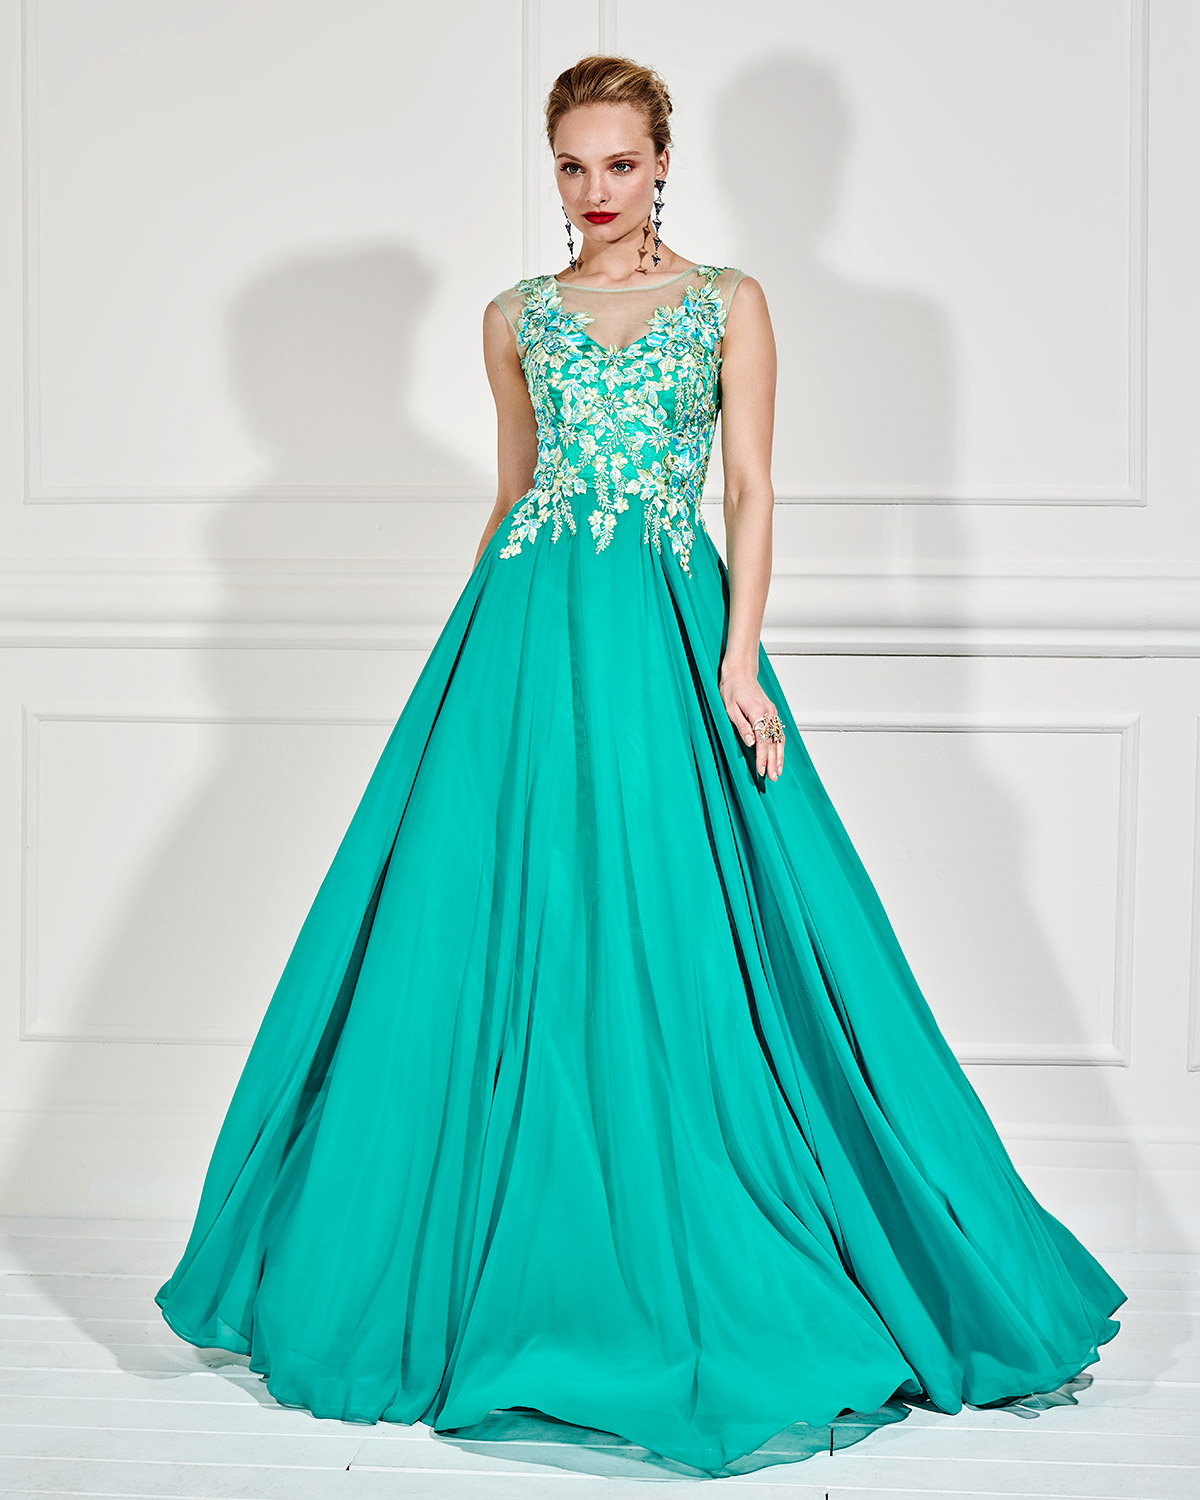 Evening Dresses / Long evening dress with applique flowers and beading